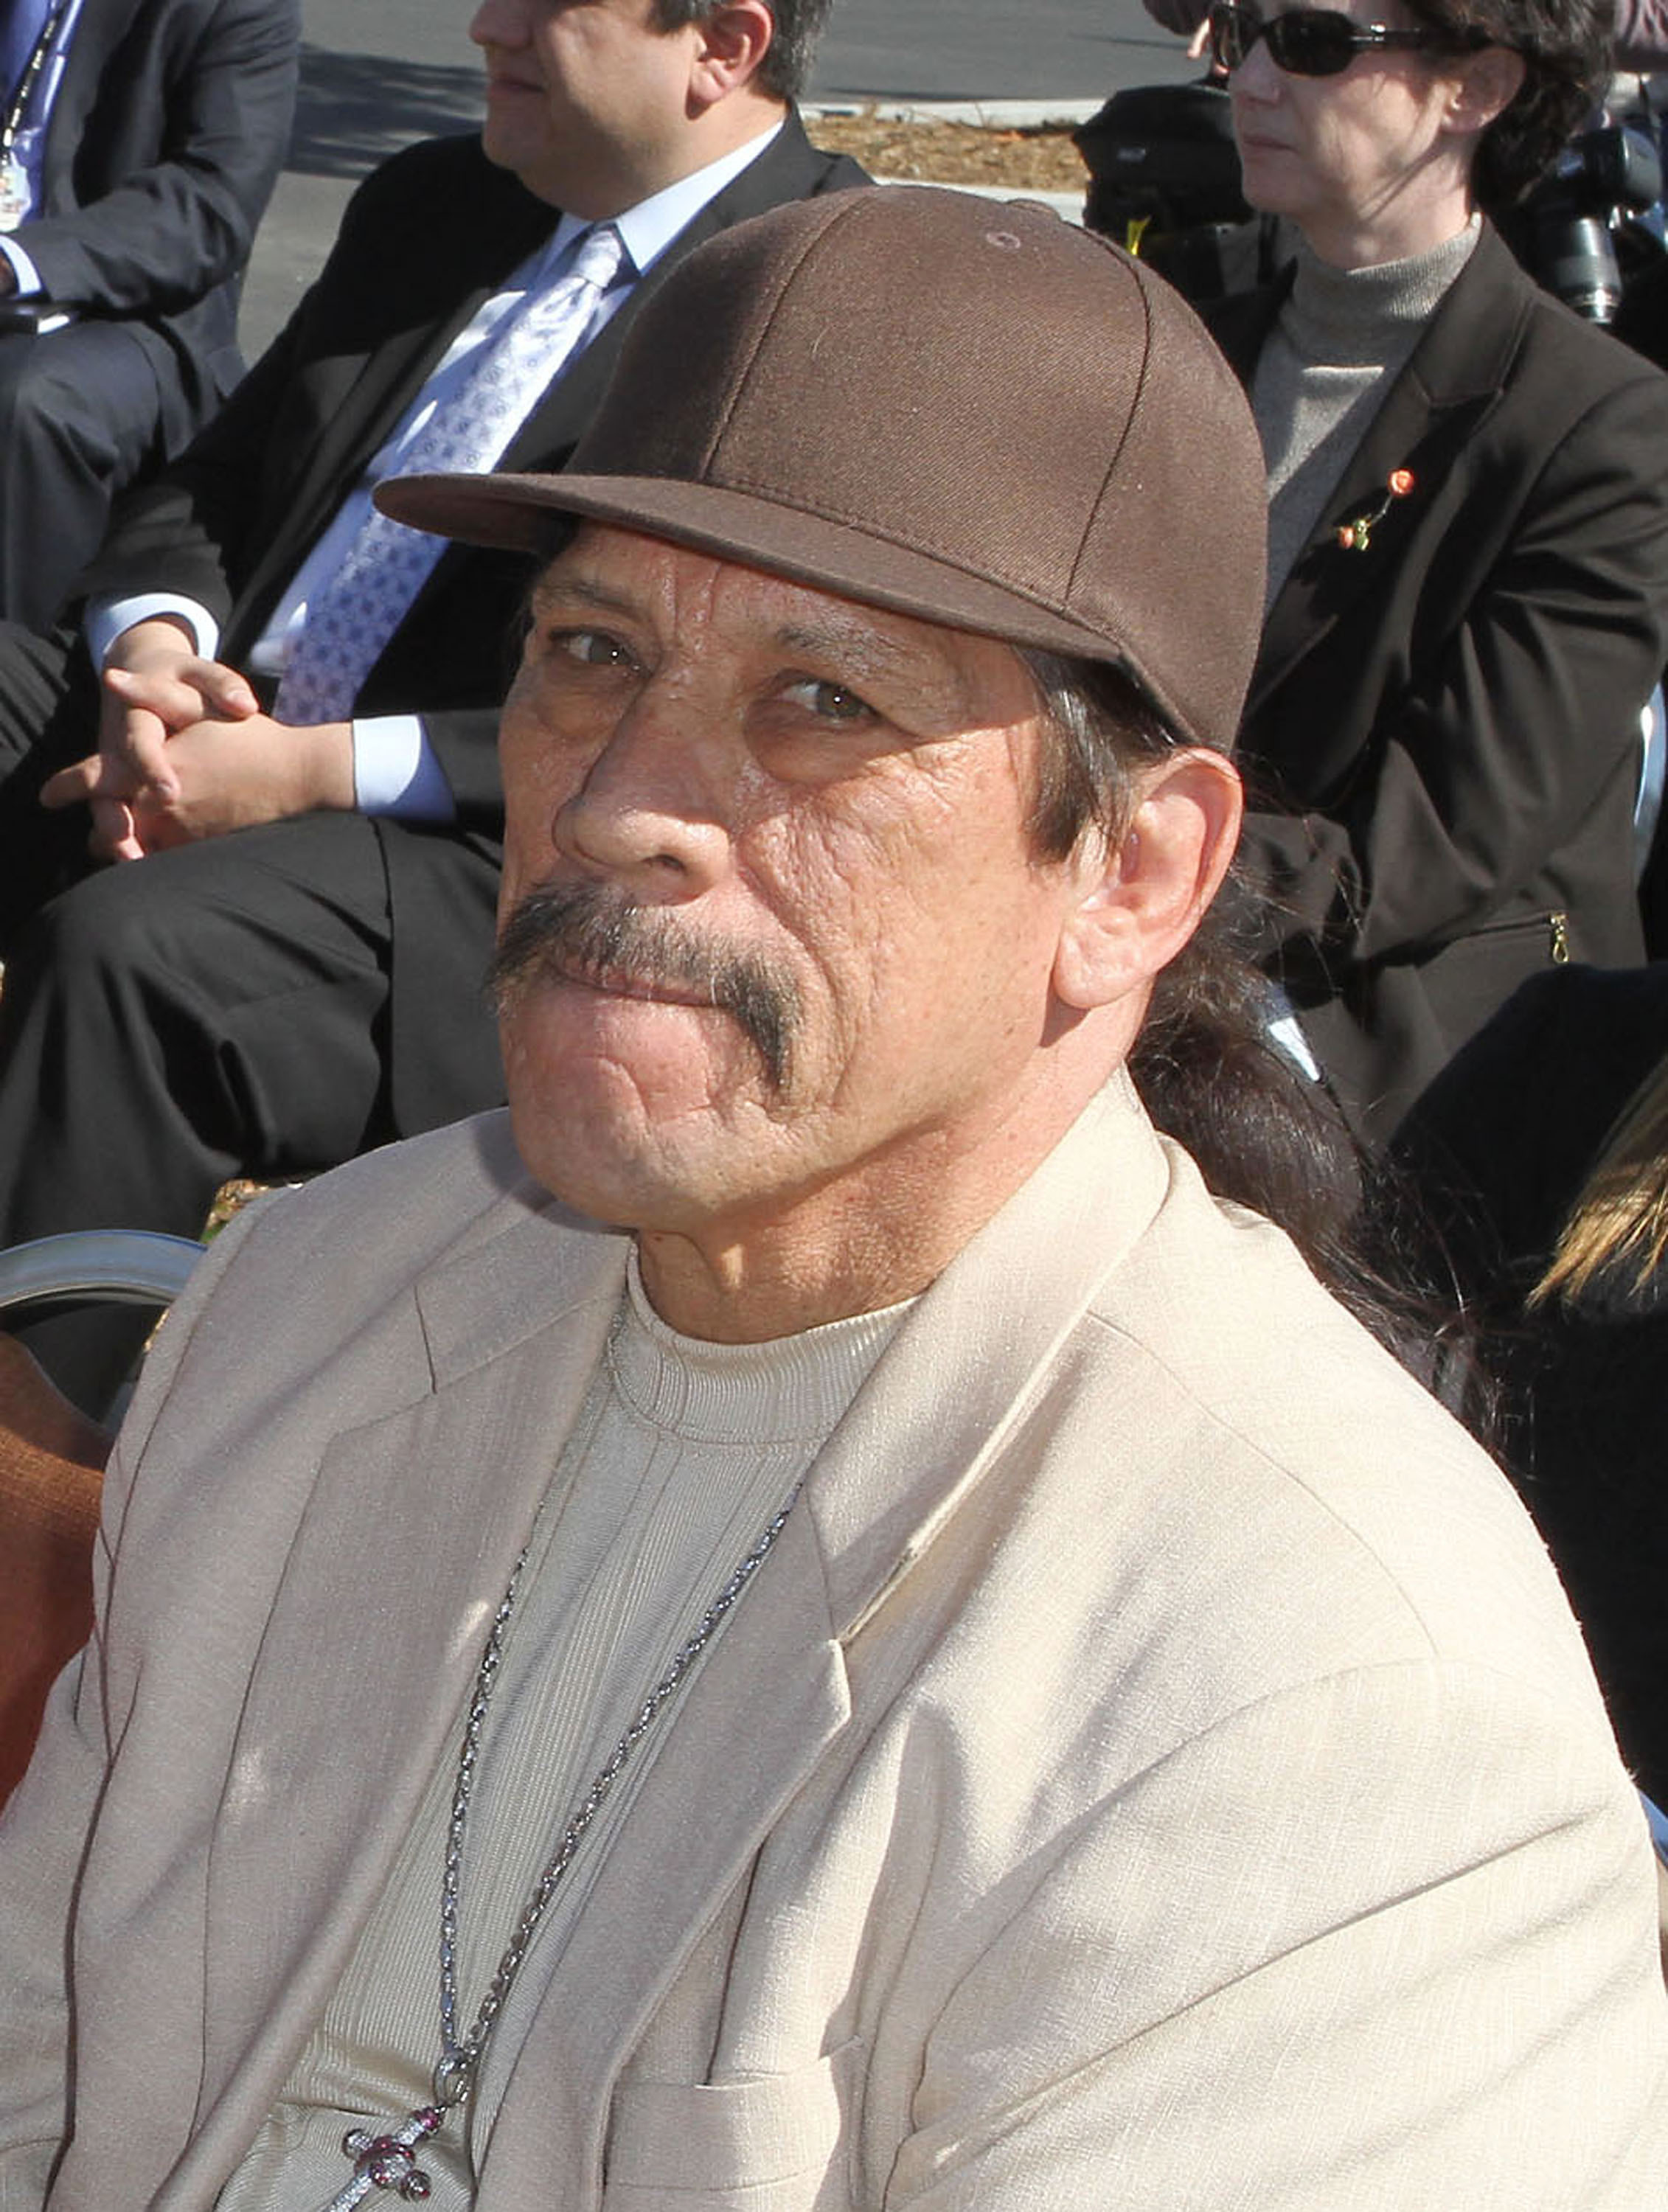 Danny Trejo was in and out of prison in the '60s and '70s